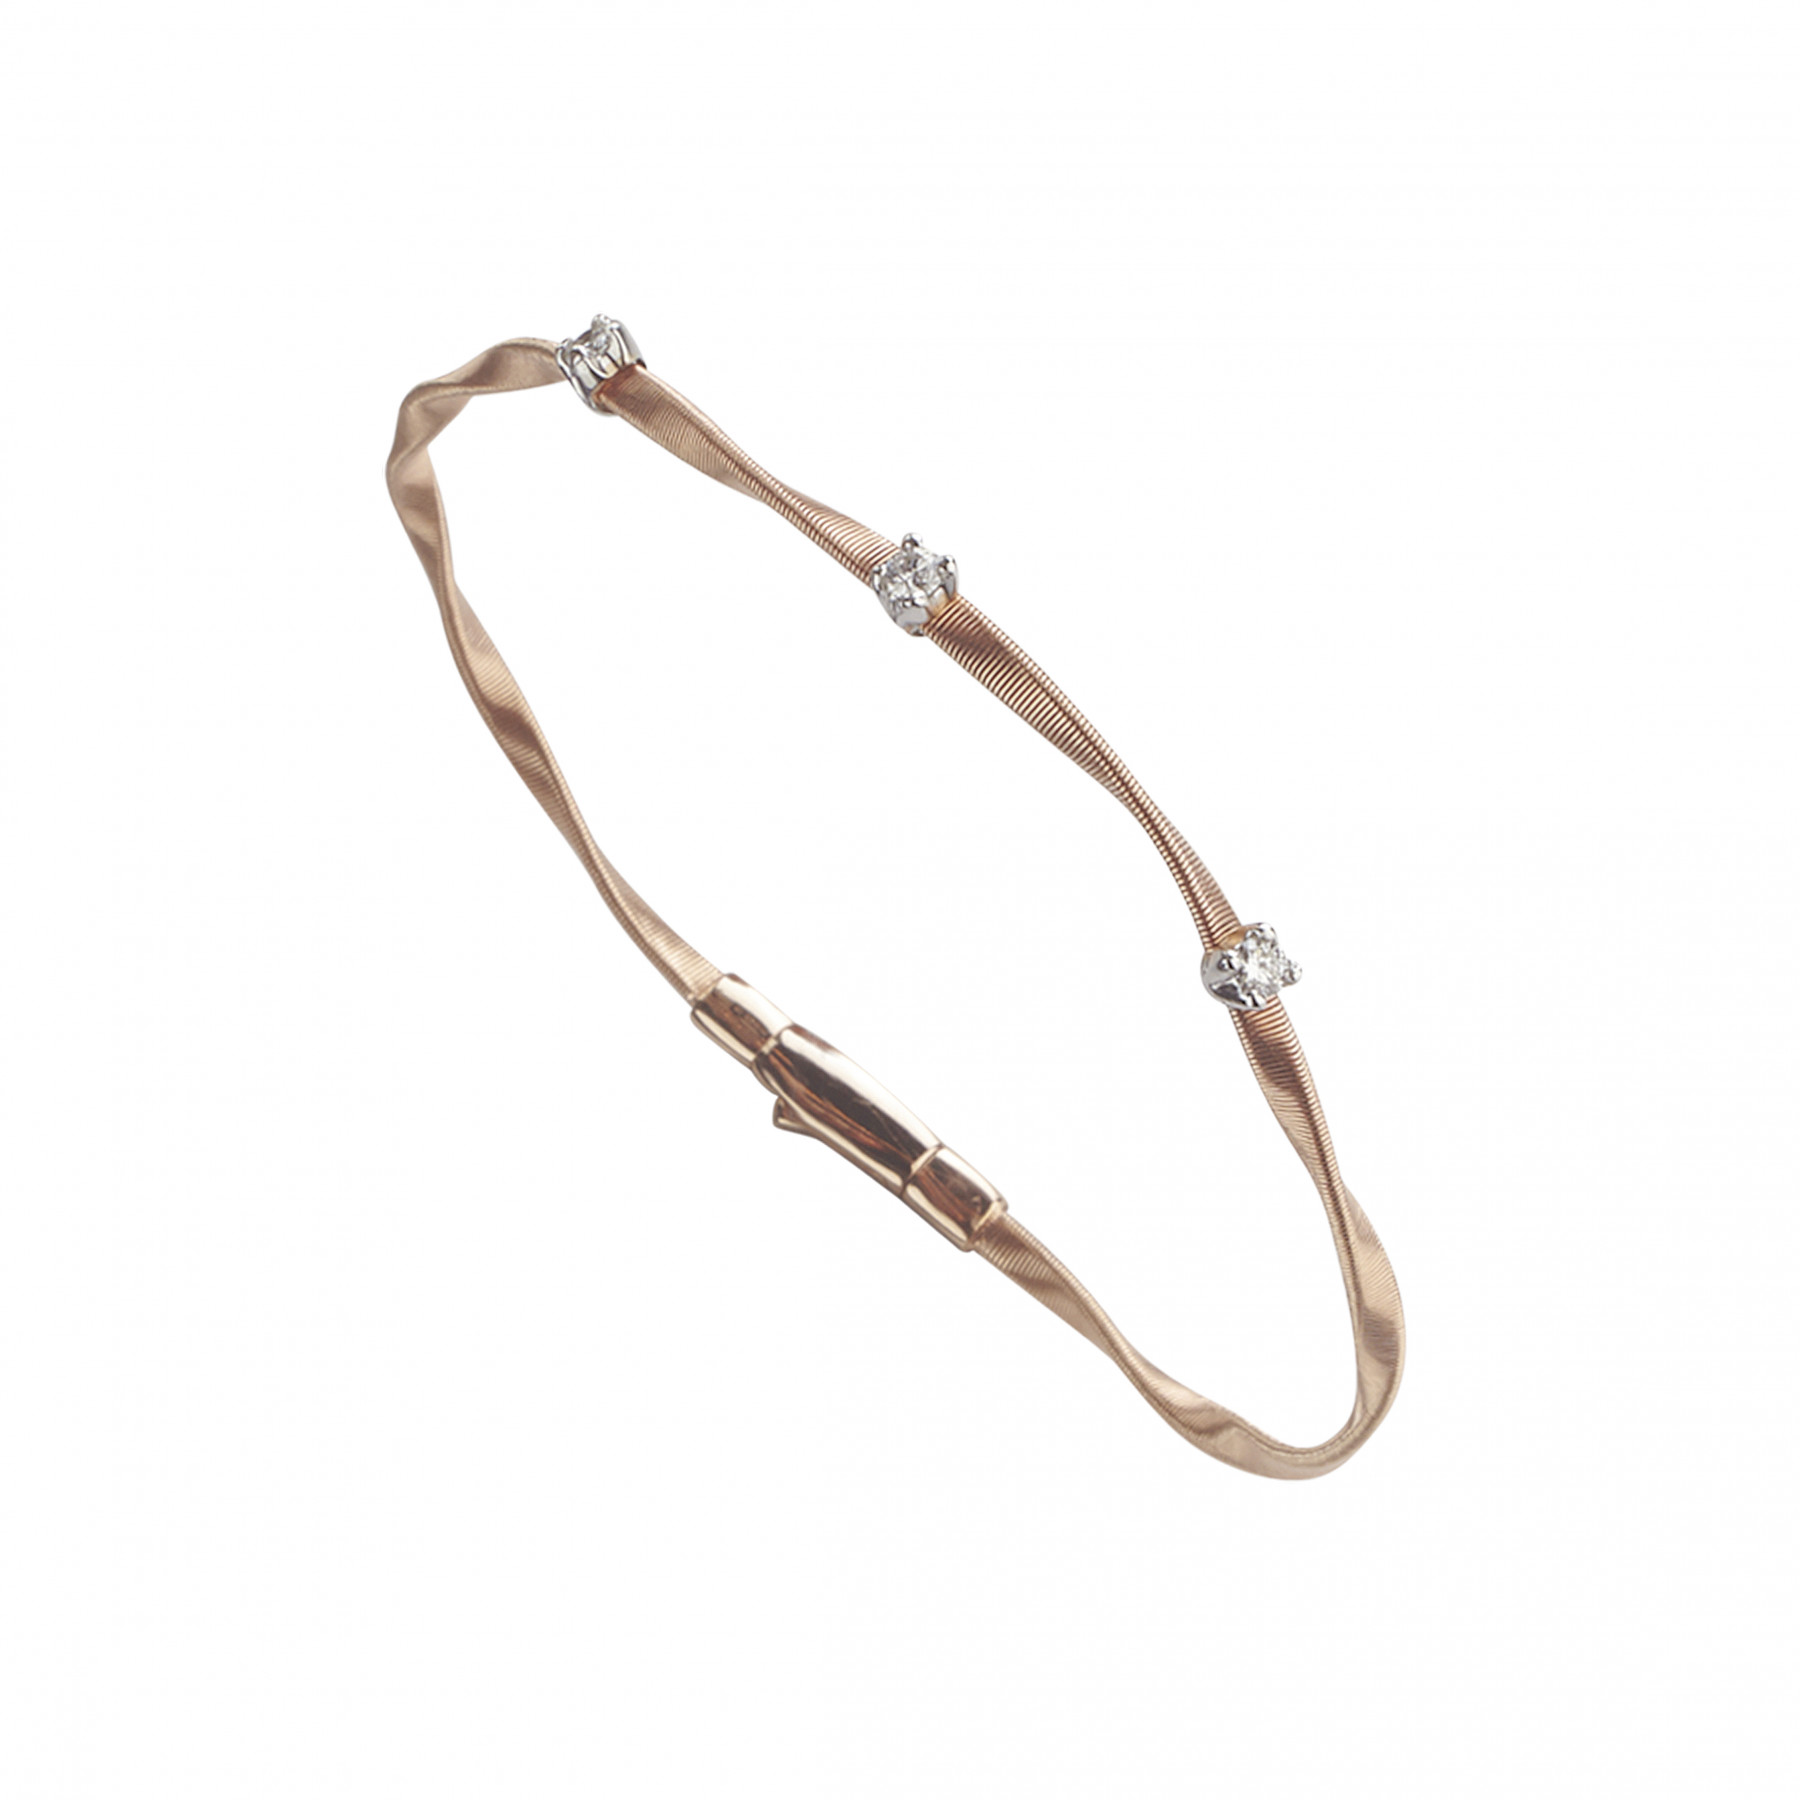 Marco Bicego Marrakech Rose Gold Bracelet with Diamonds